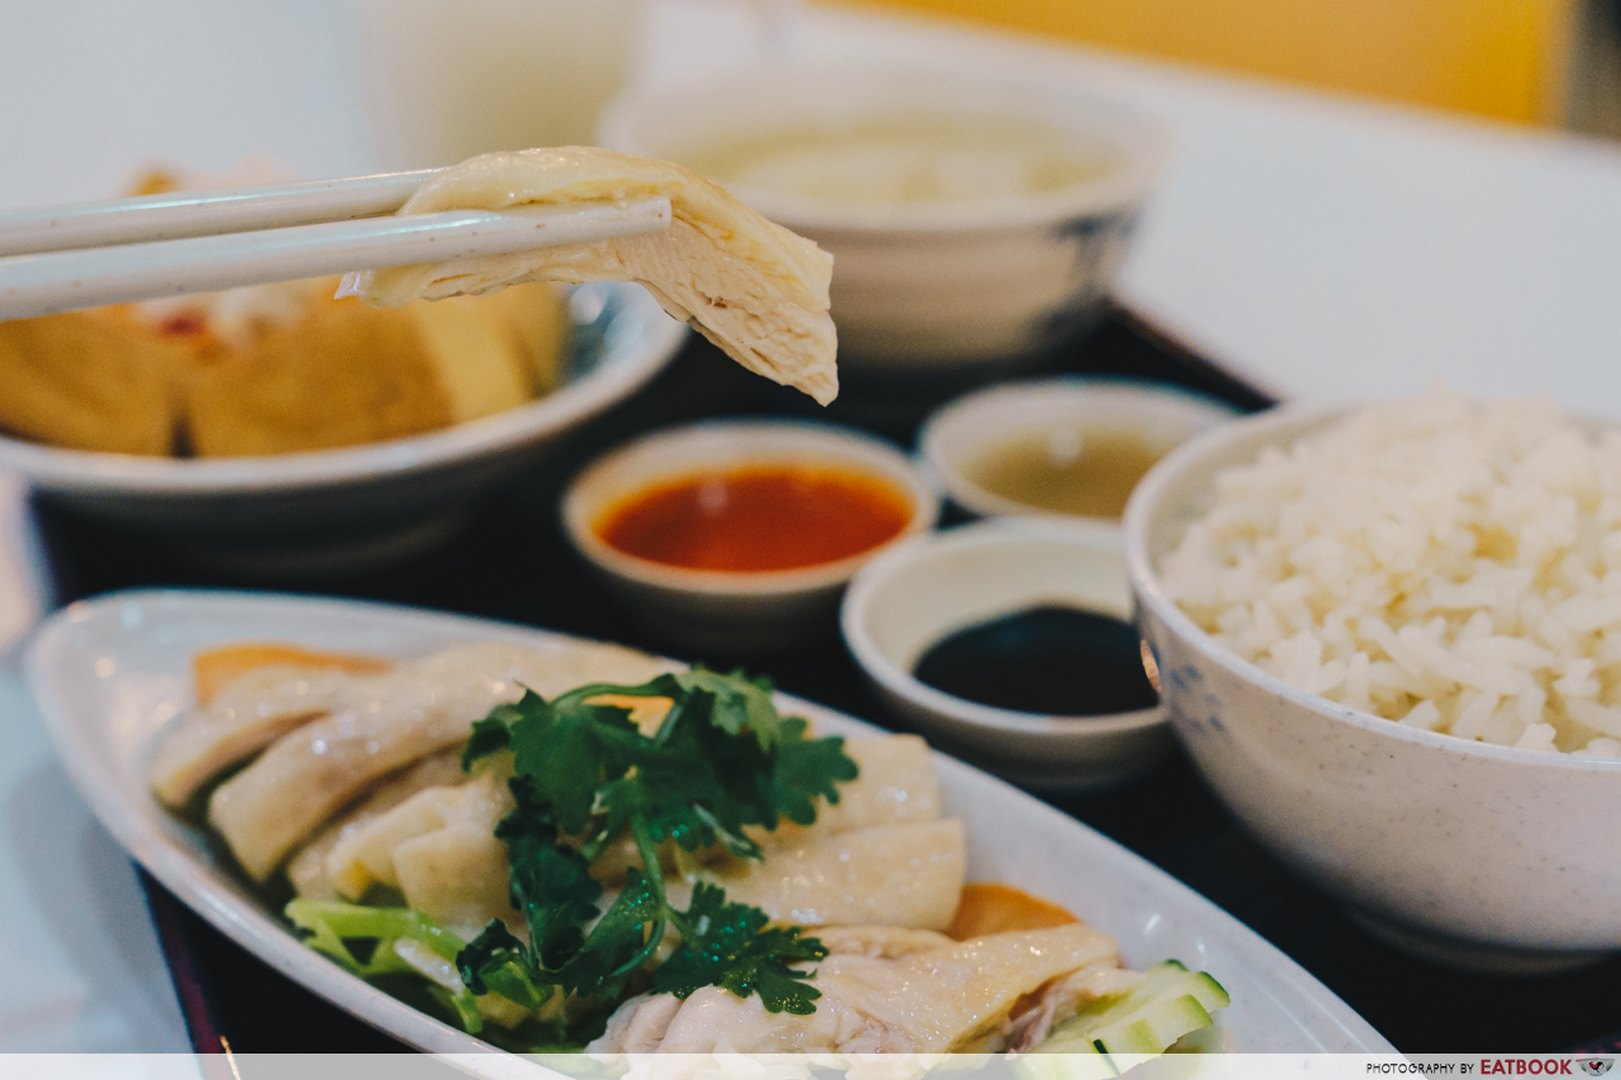 Downtown East Family Restaurants Mr Chicken Rice Set